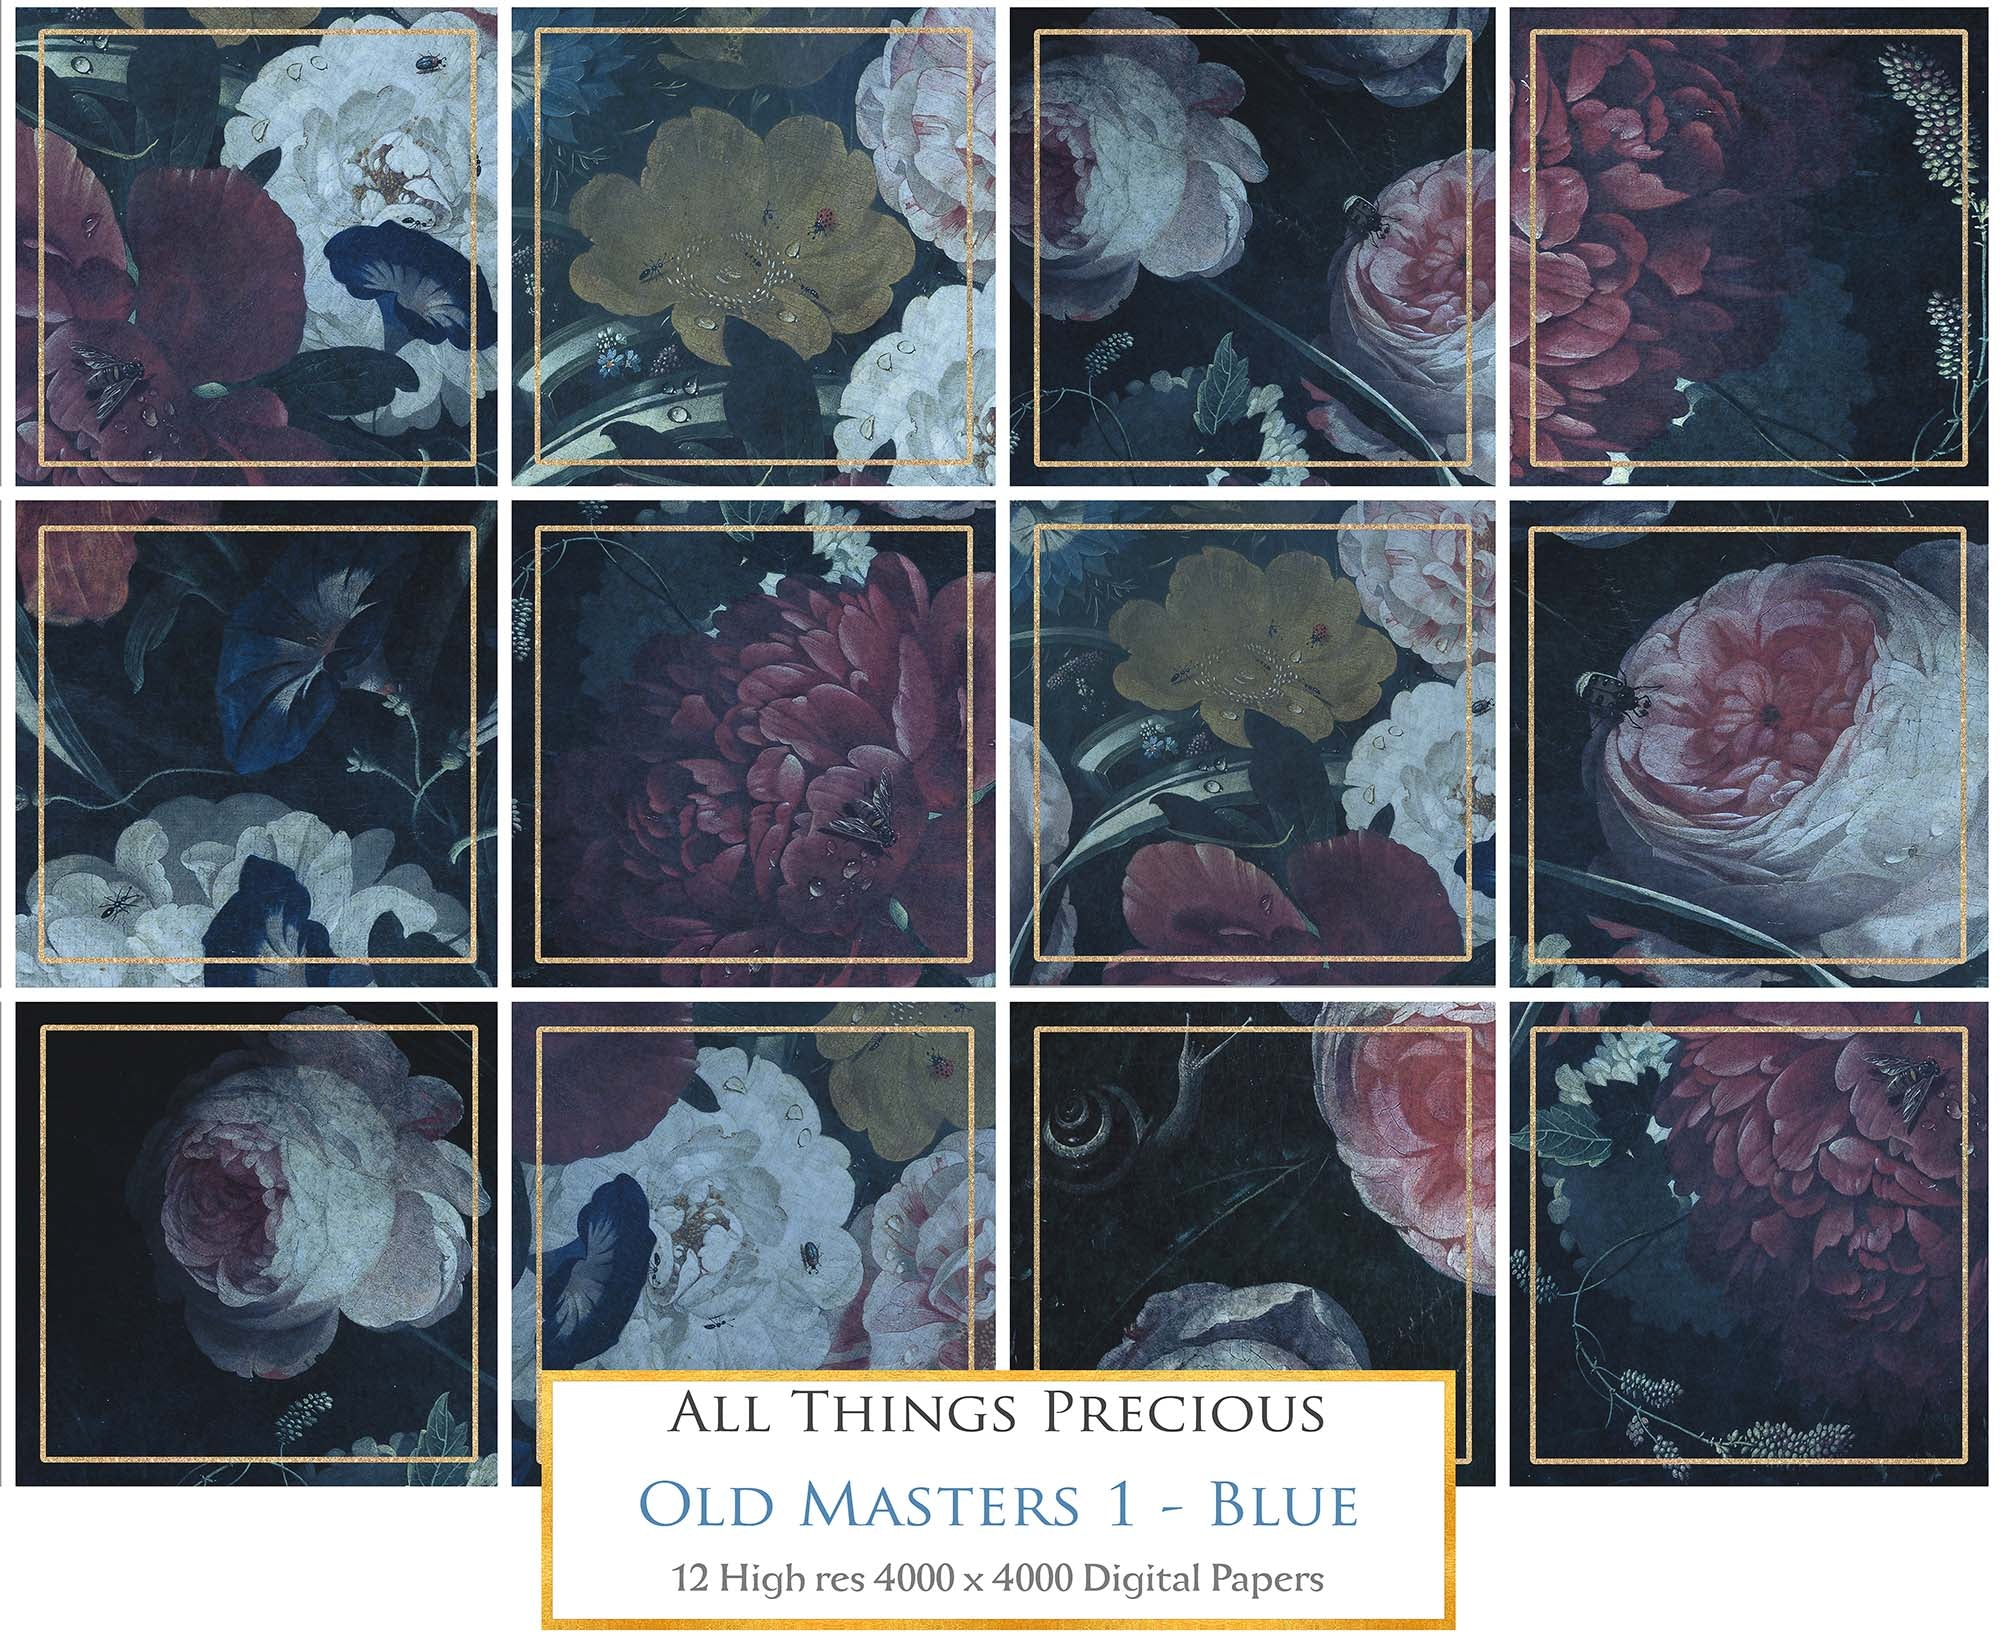 OLD MASTERS FLORAL Set 1 - BLUE - Digital Papers